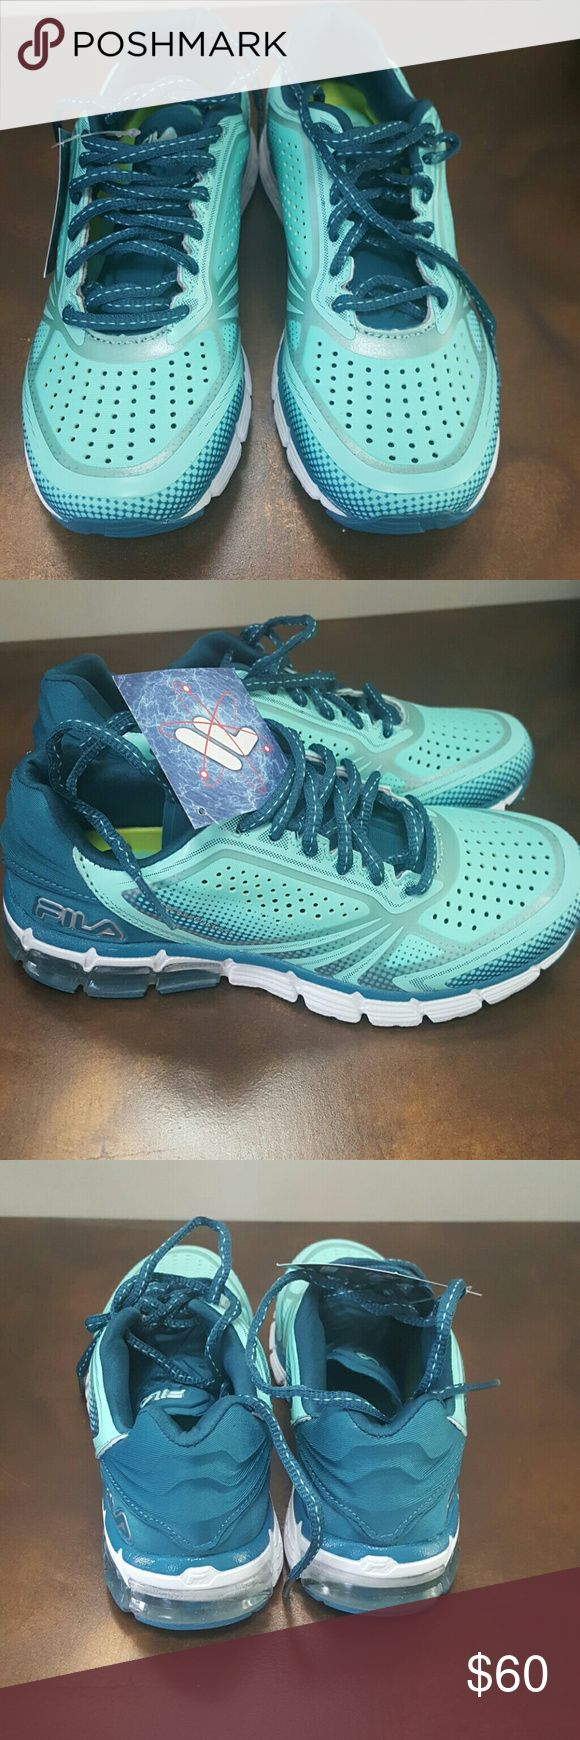 New with tags! Fila sneakers/running shoes. Gorgeous color sneakers, brand new with tags. Comes in original box! Fila Shoes Sneakers